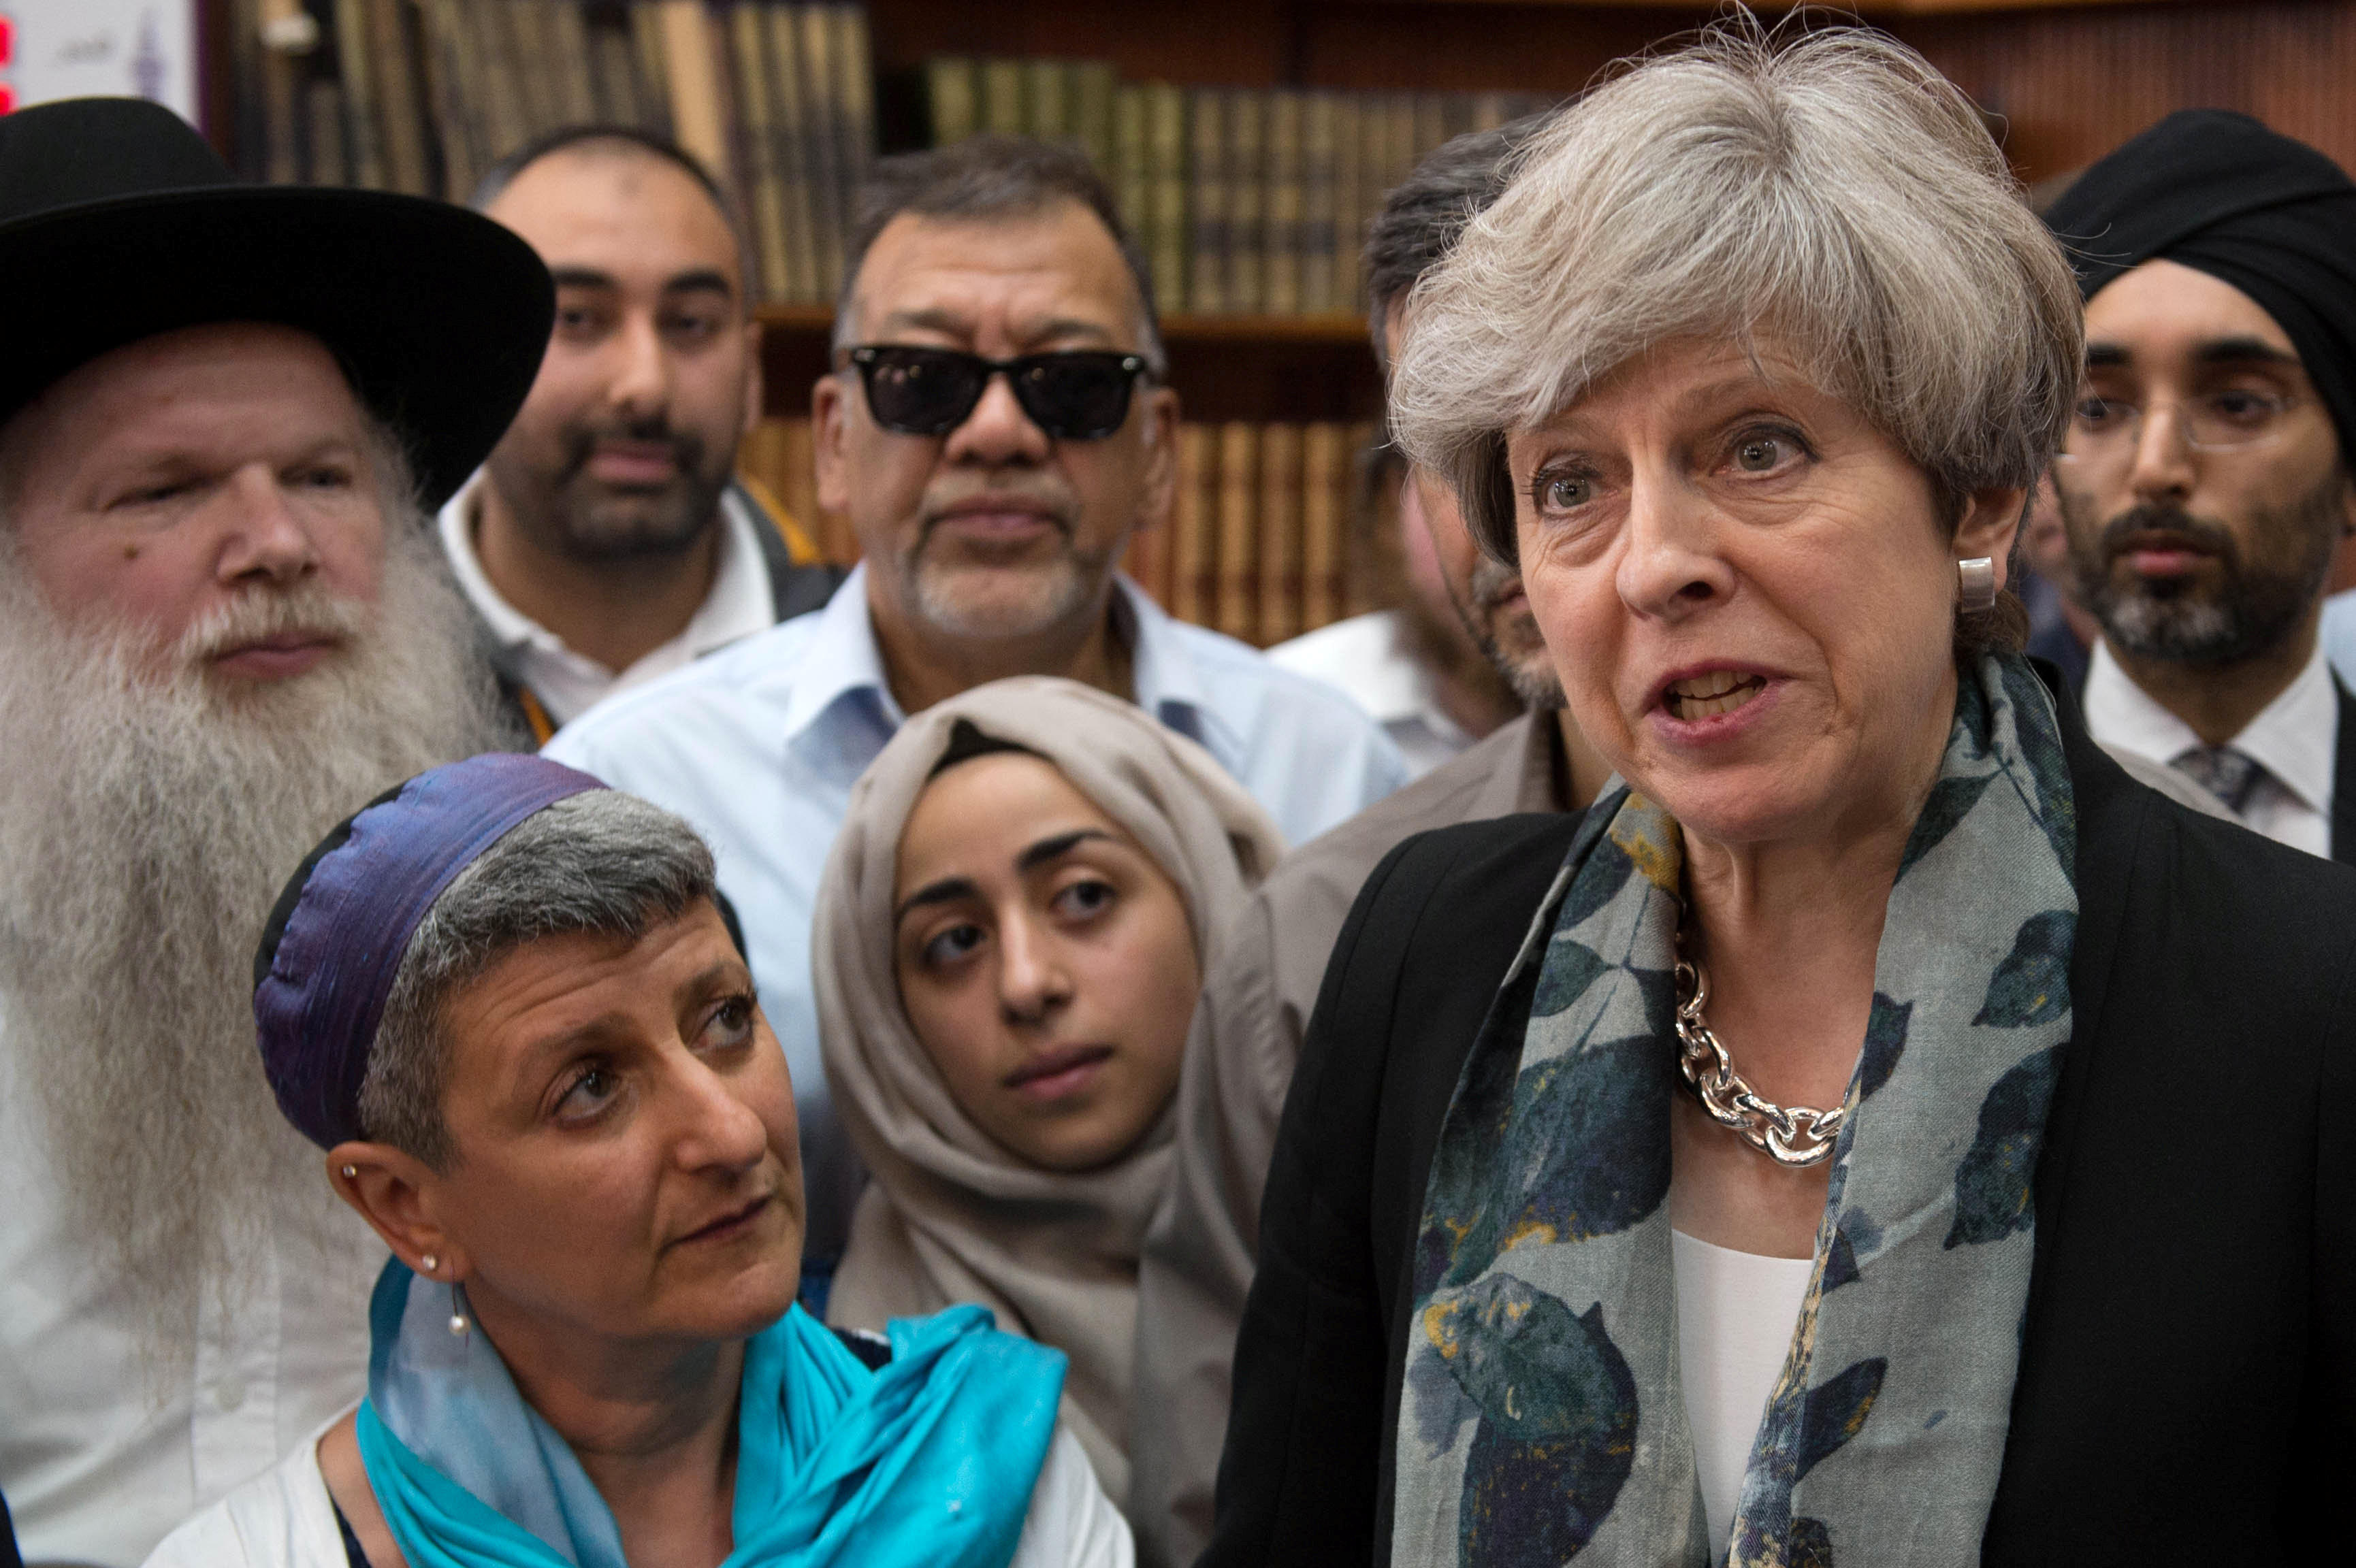 8dde37c77c2 London terror attack on Muslims spurs officials to try to ease tensions